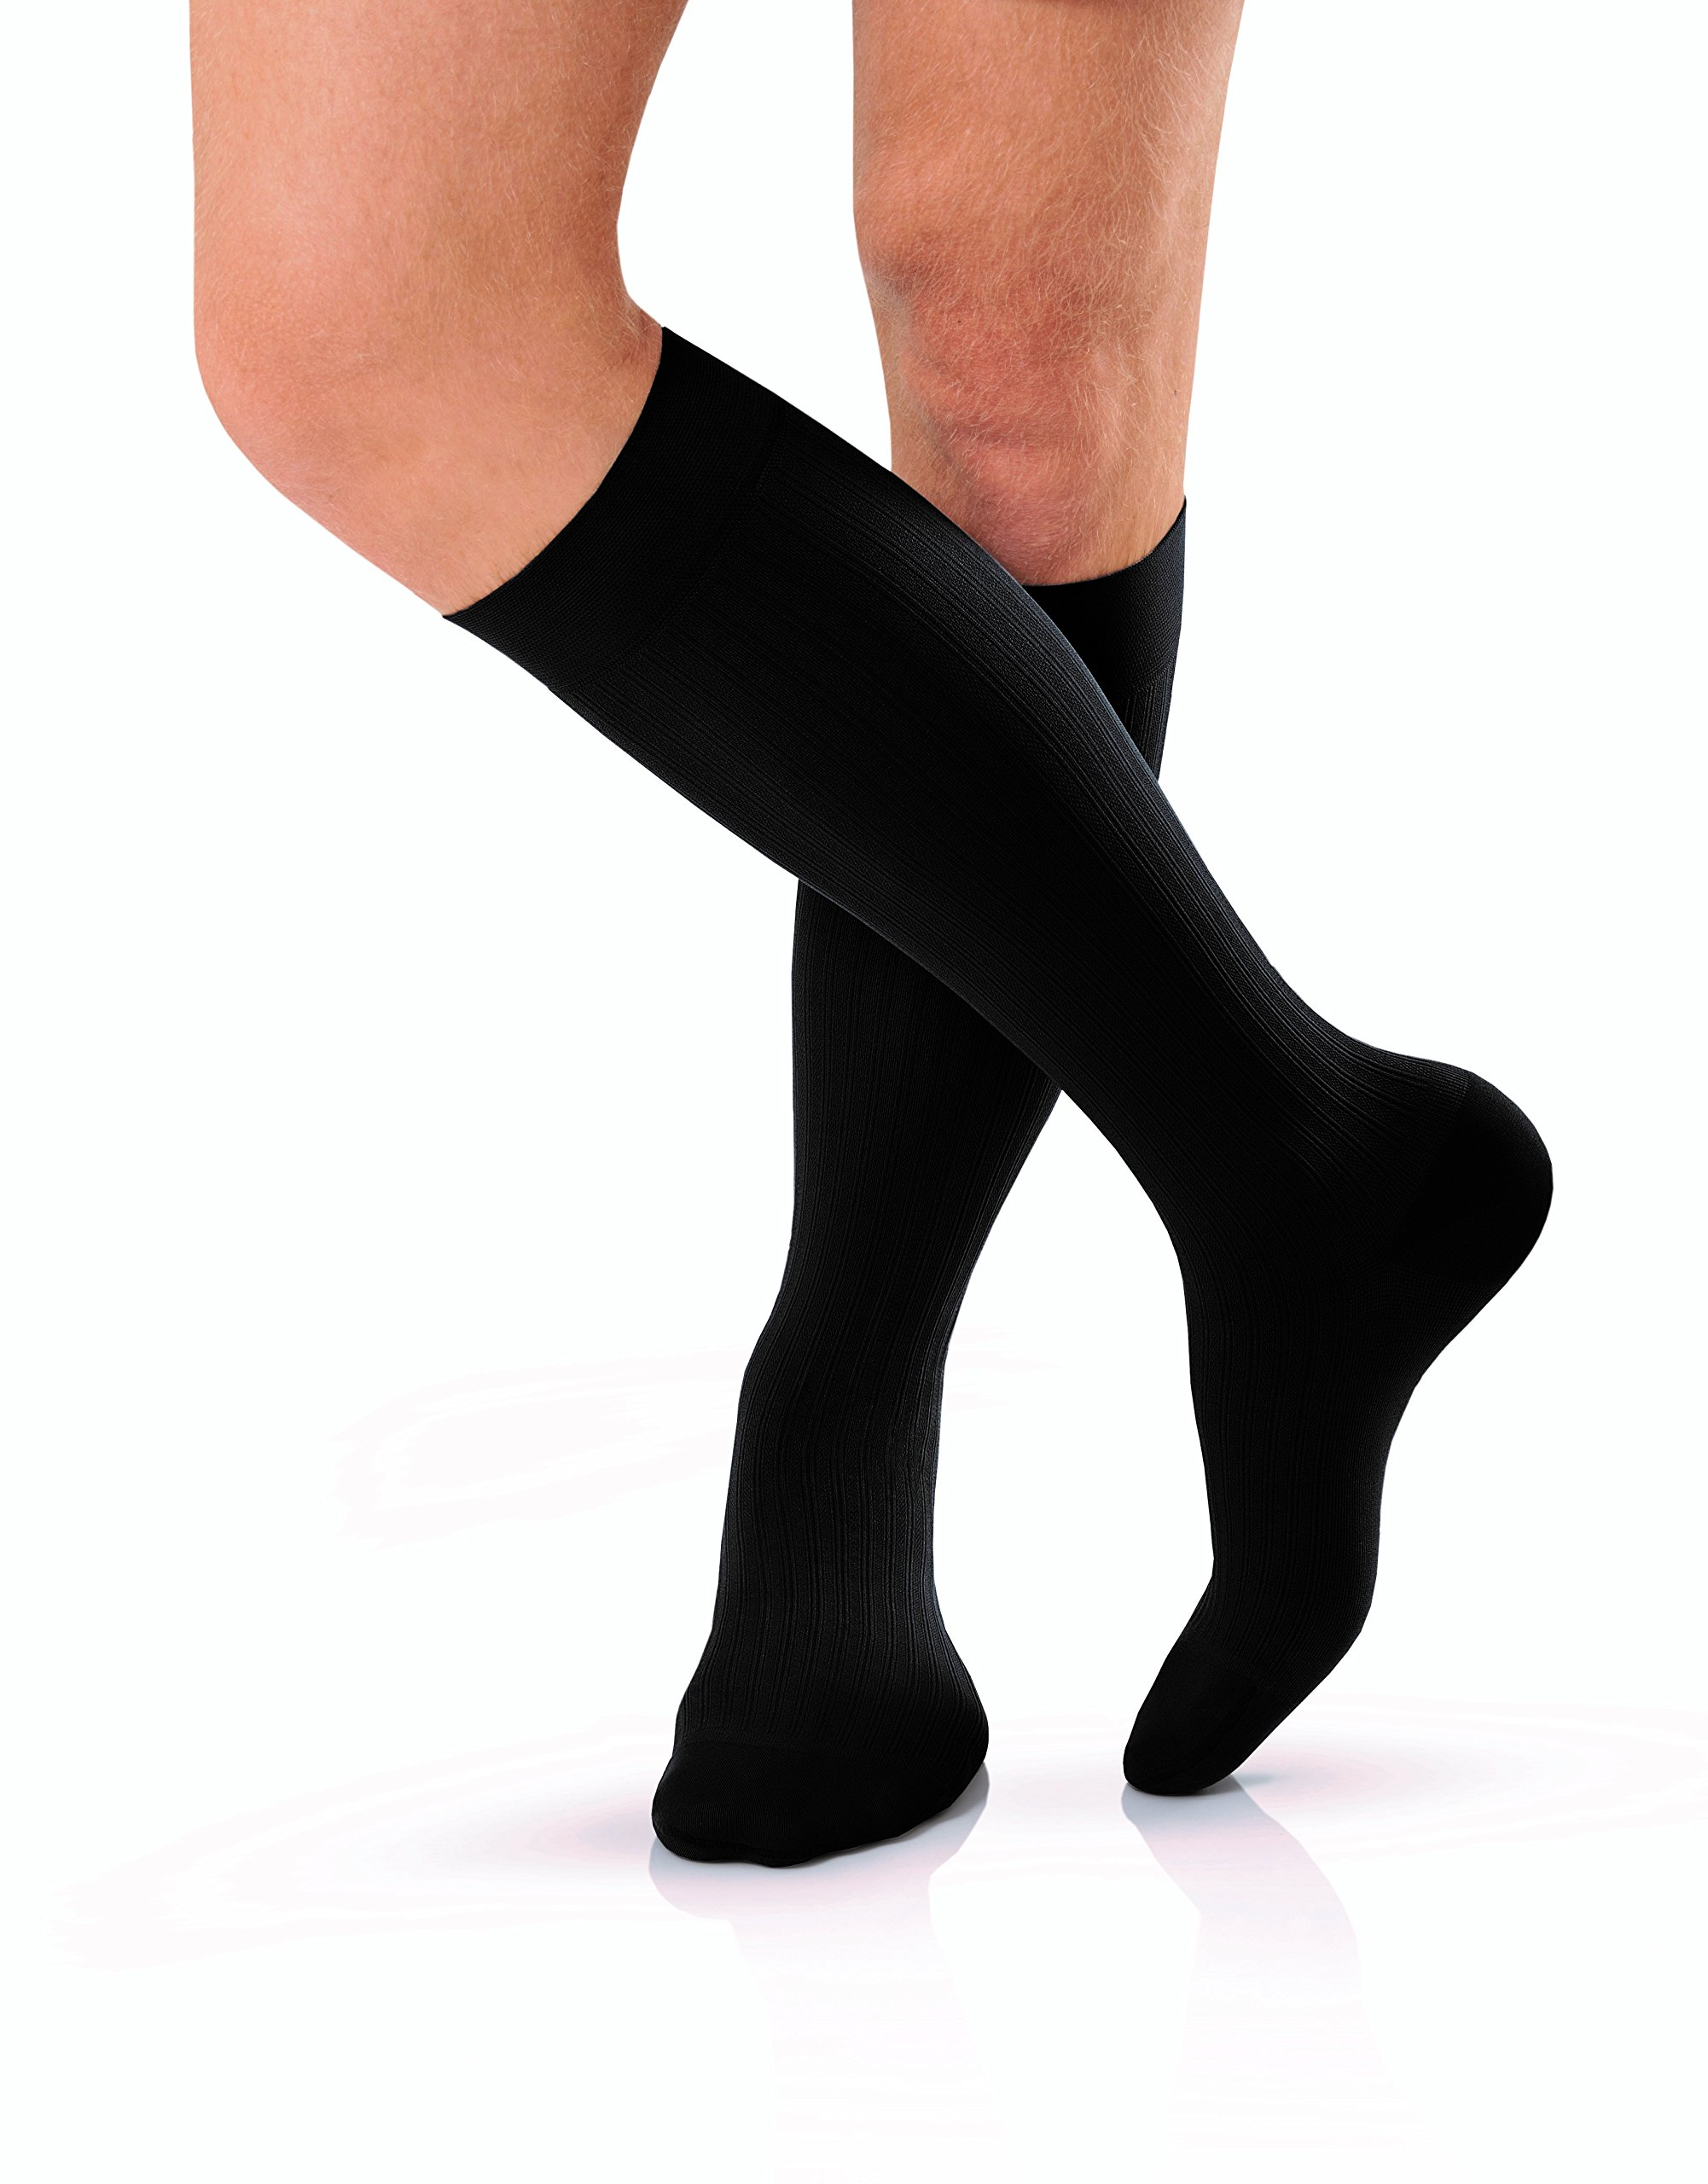 JOBST forMen Knee High 15-20 mmHg Compression Socks, Closed Toe, X-